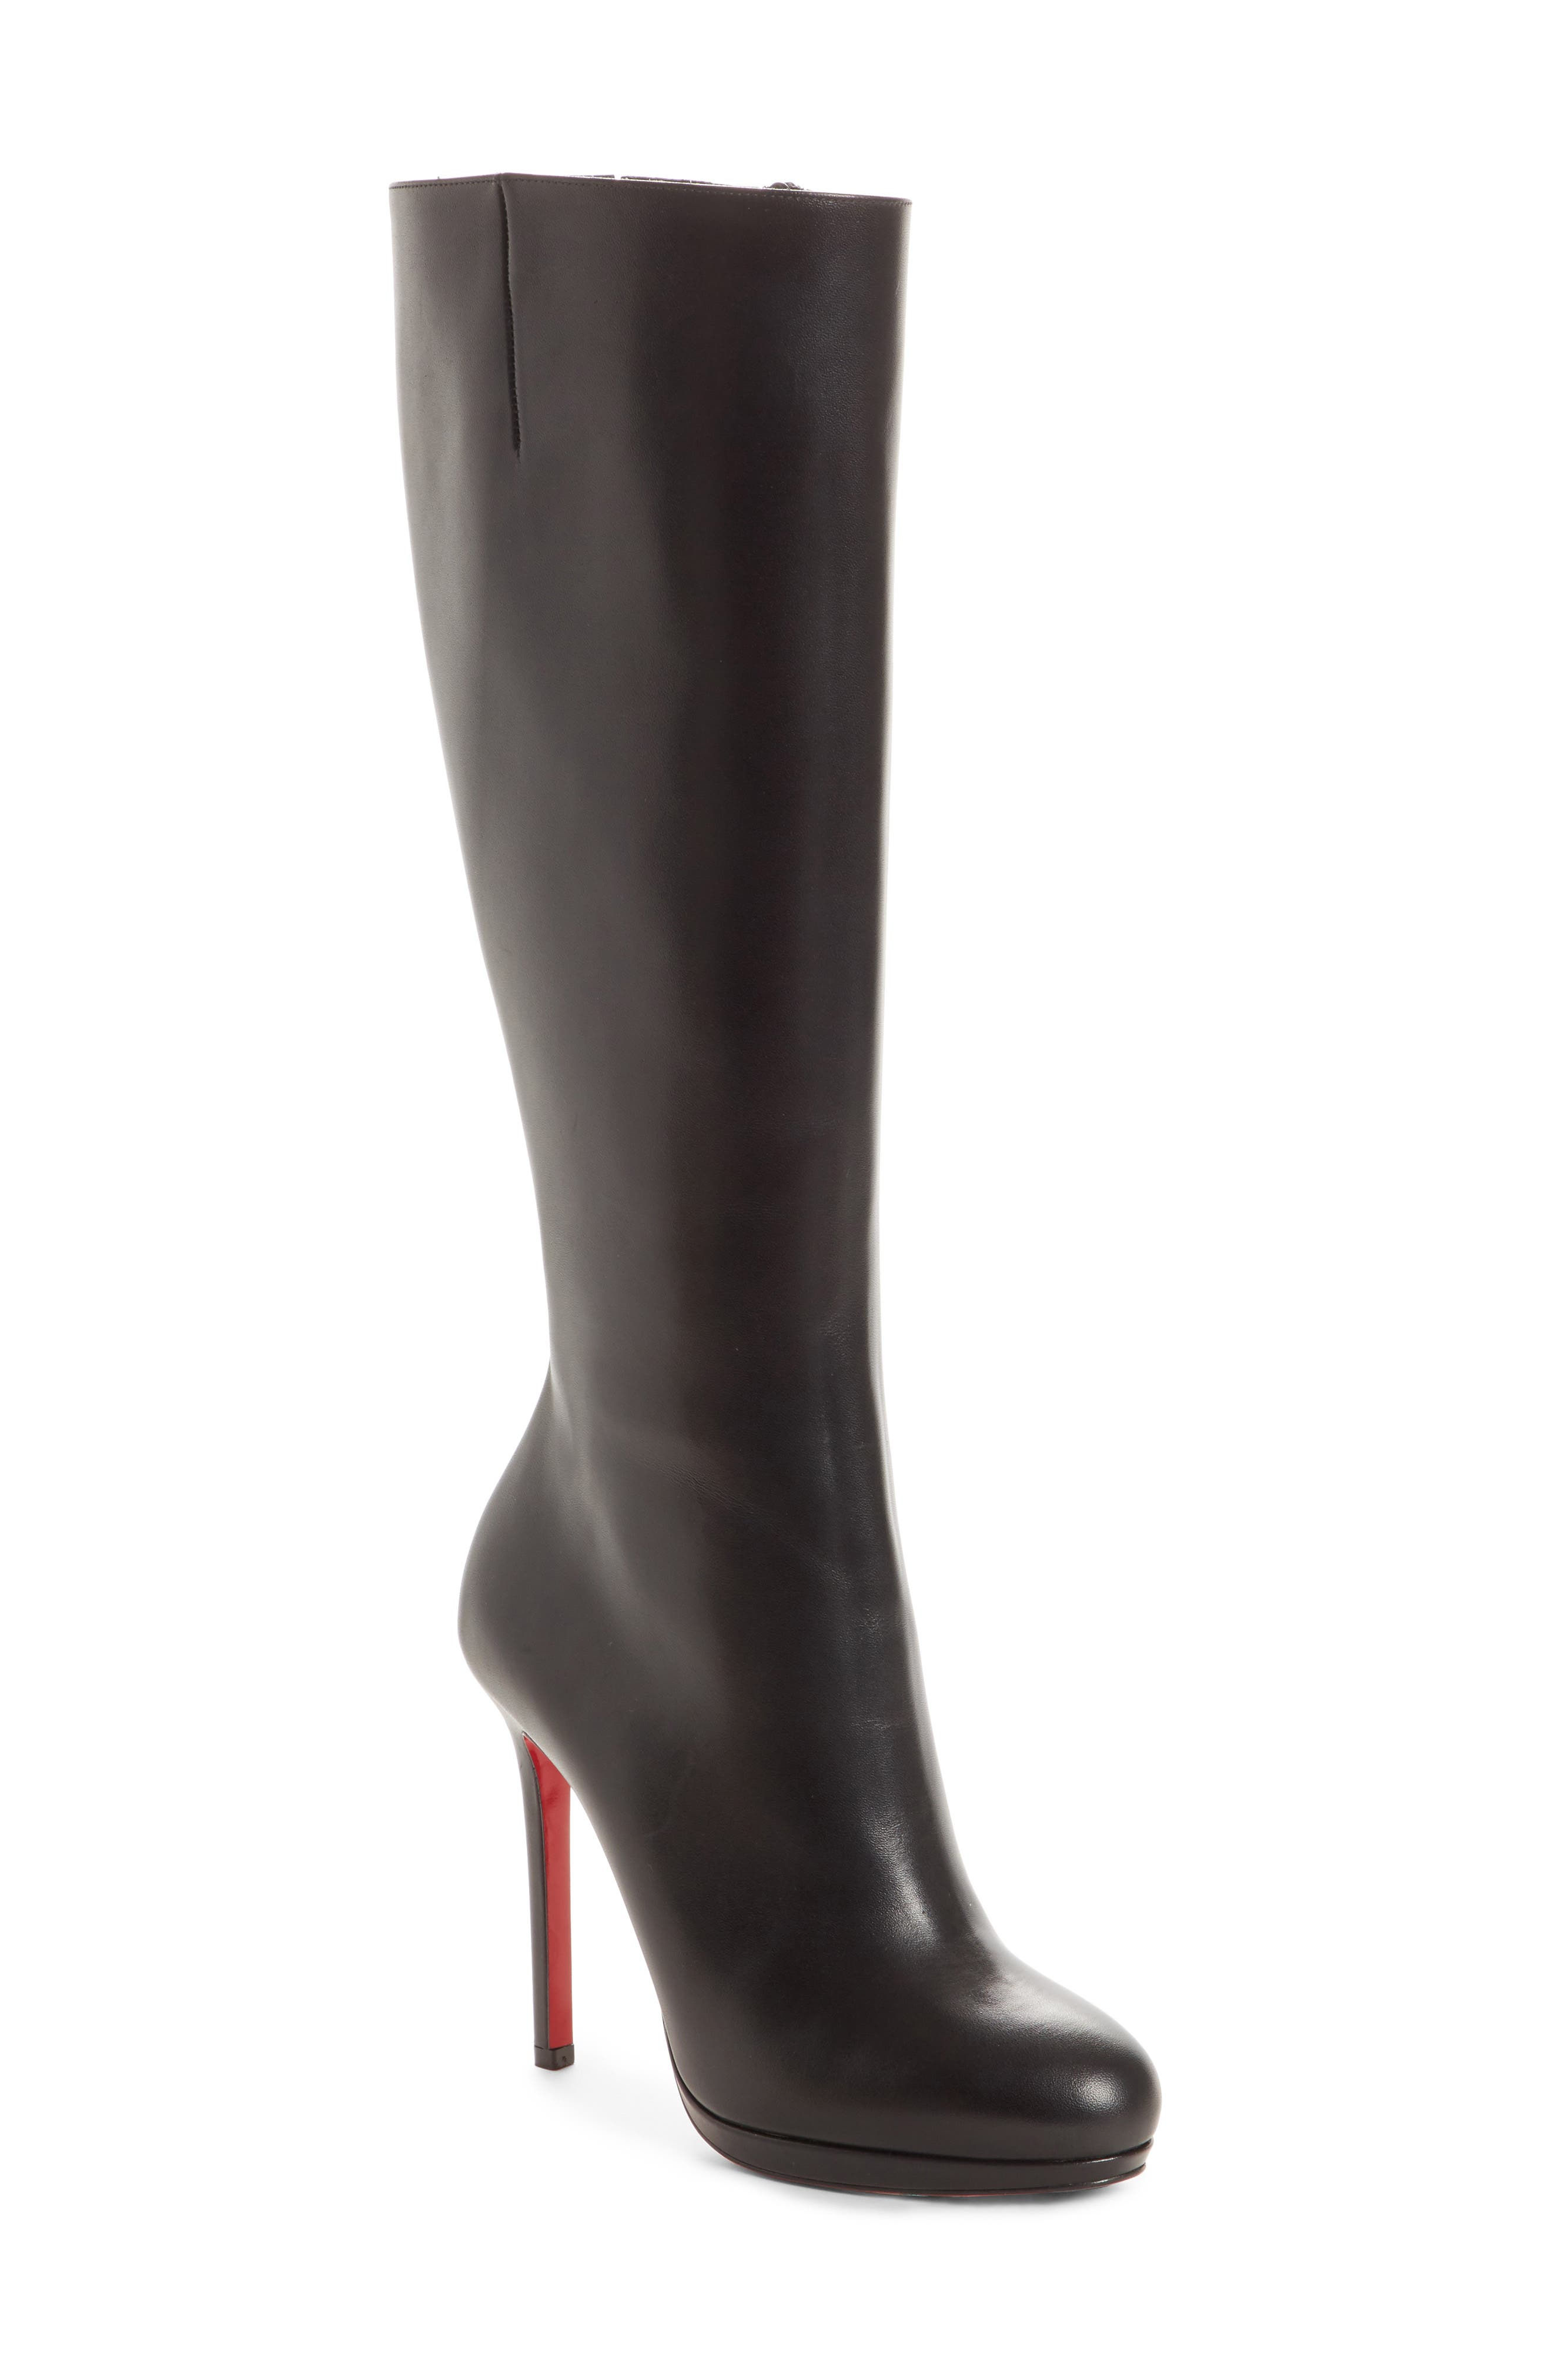 Christian Louboutin Botalili Knee High Boot - Black